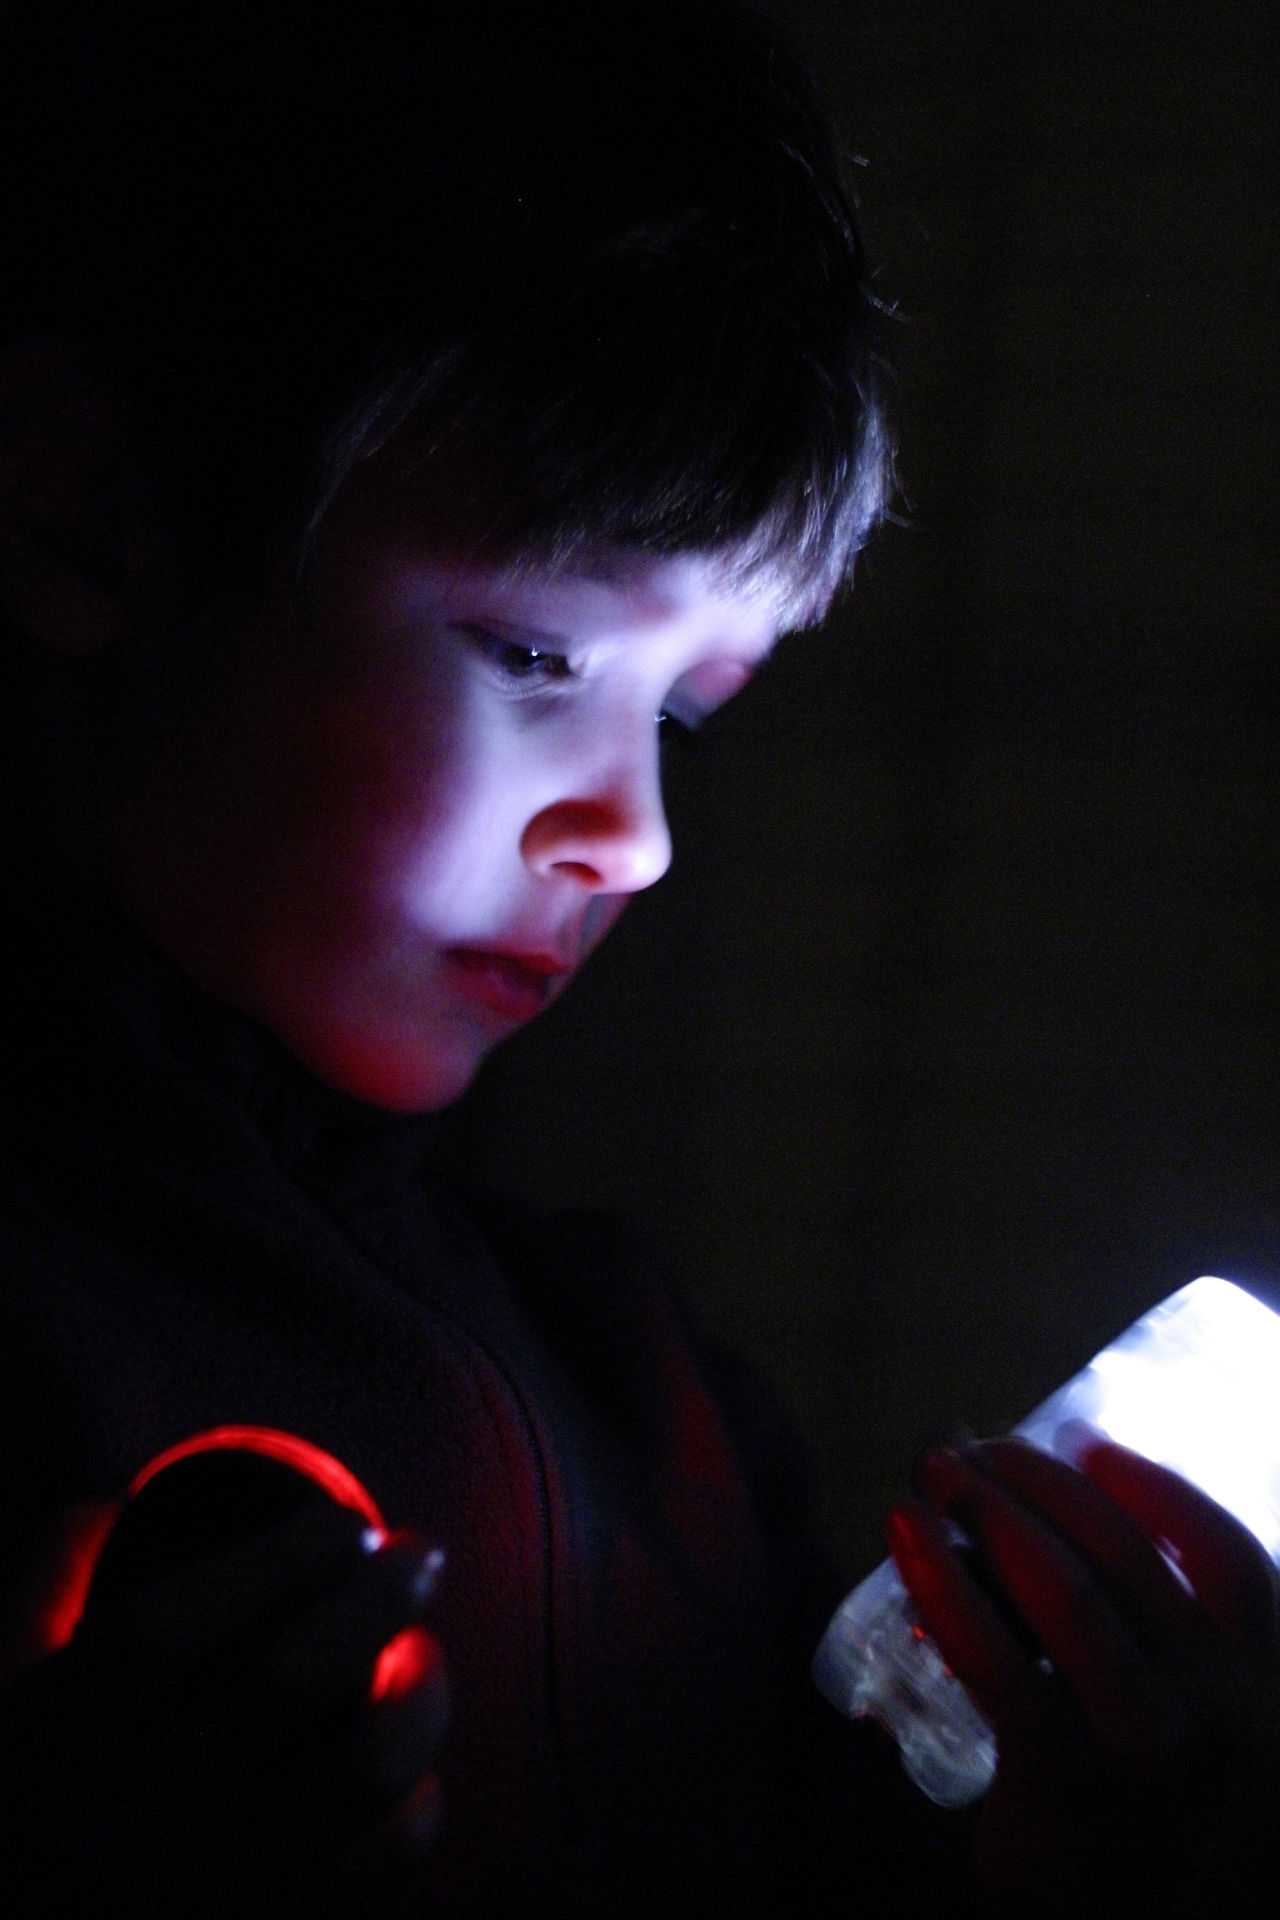 Bicycle Lights Black Background Boy Child Childhood Close-up Curiosity Face Growth Headshot Learning Light Low Light One Person People Portrait Profile Real People Science Wonder